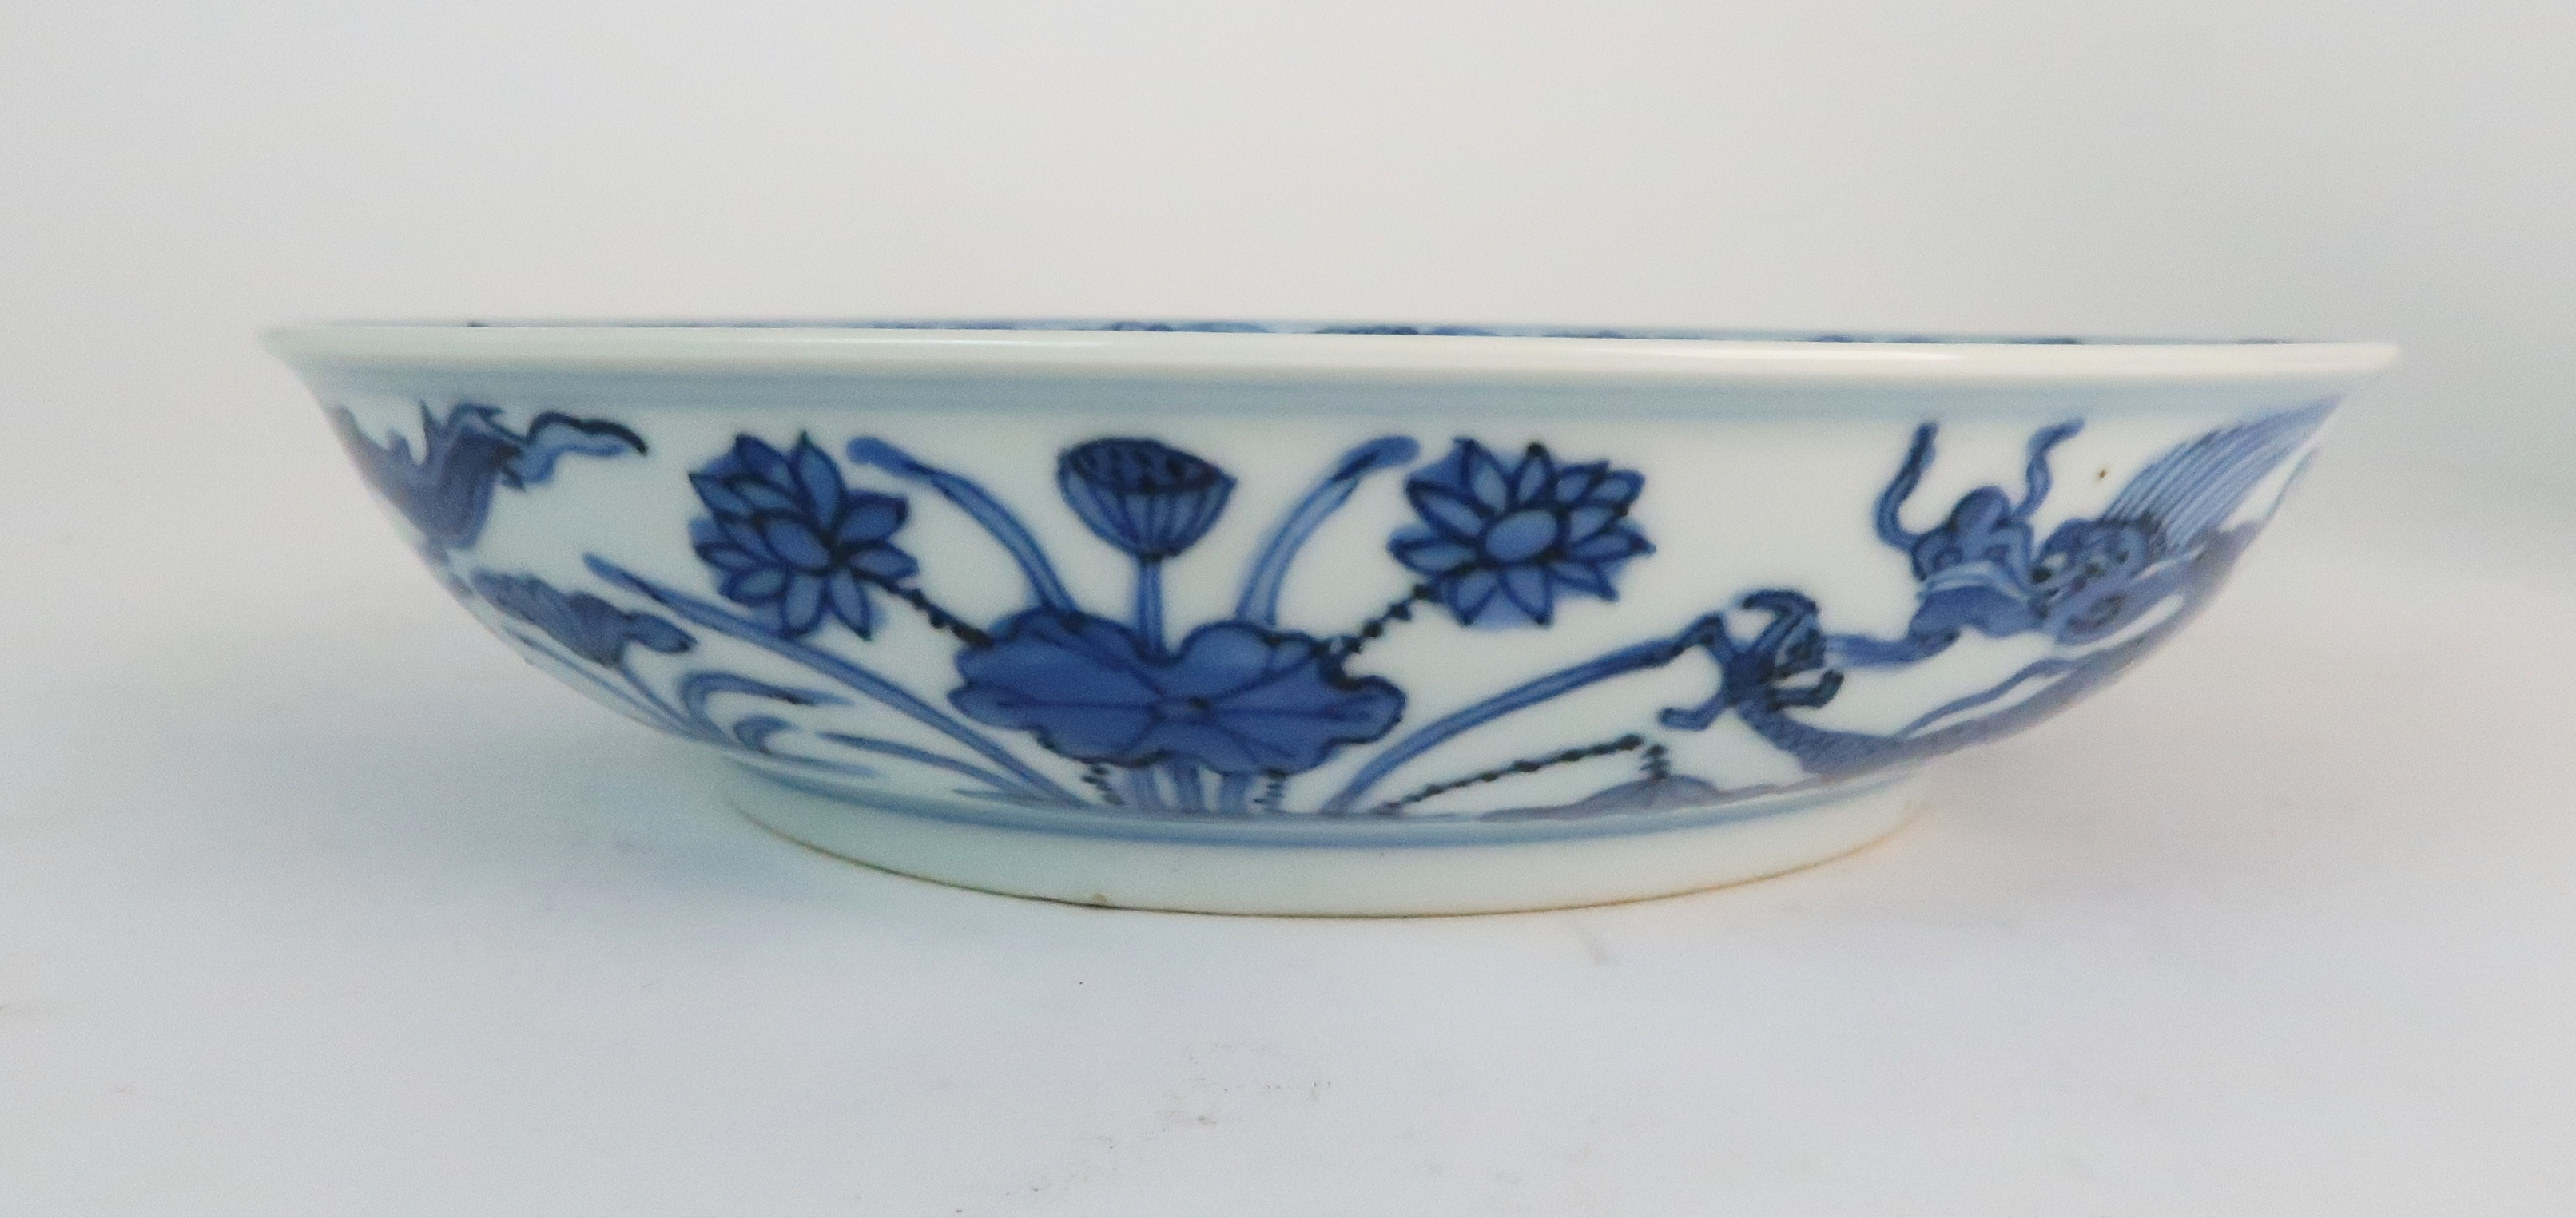 A CHINESE BLUE AND WHITE DISH painted with dragons amongst aquatic foliage, within a scrolling - Image 4 of 6